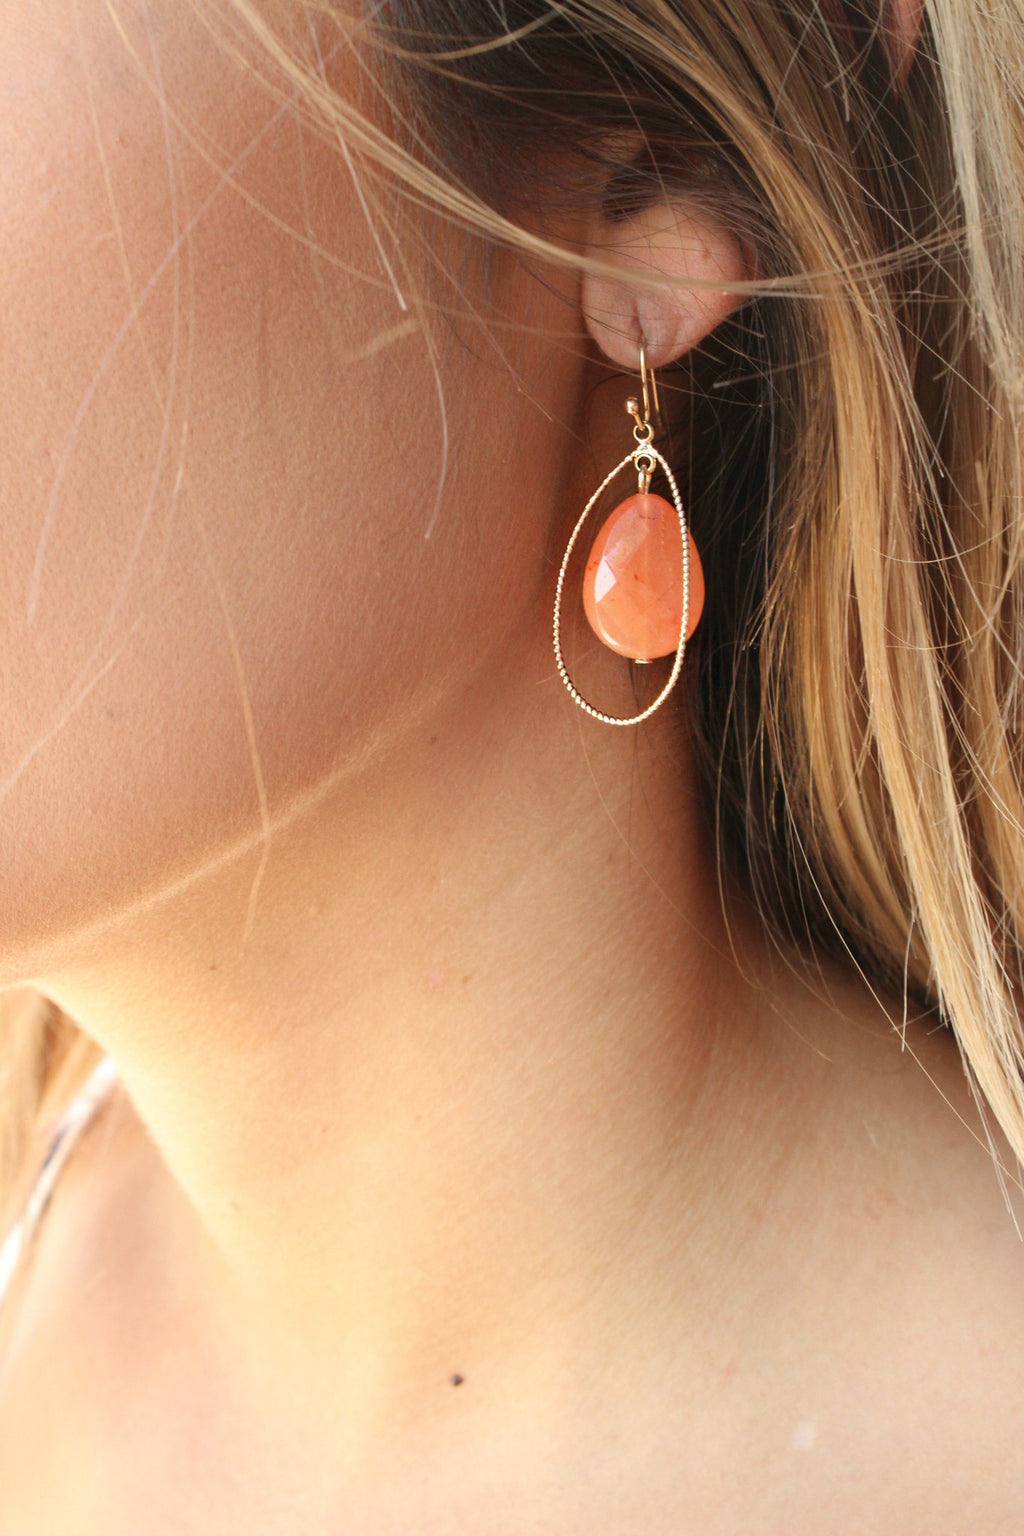 Splash of Citrus Earrings - Leah B. Boutique